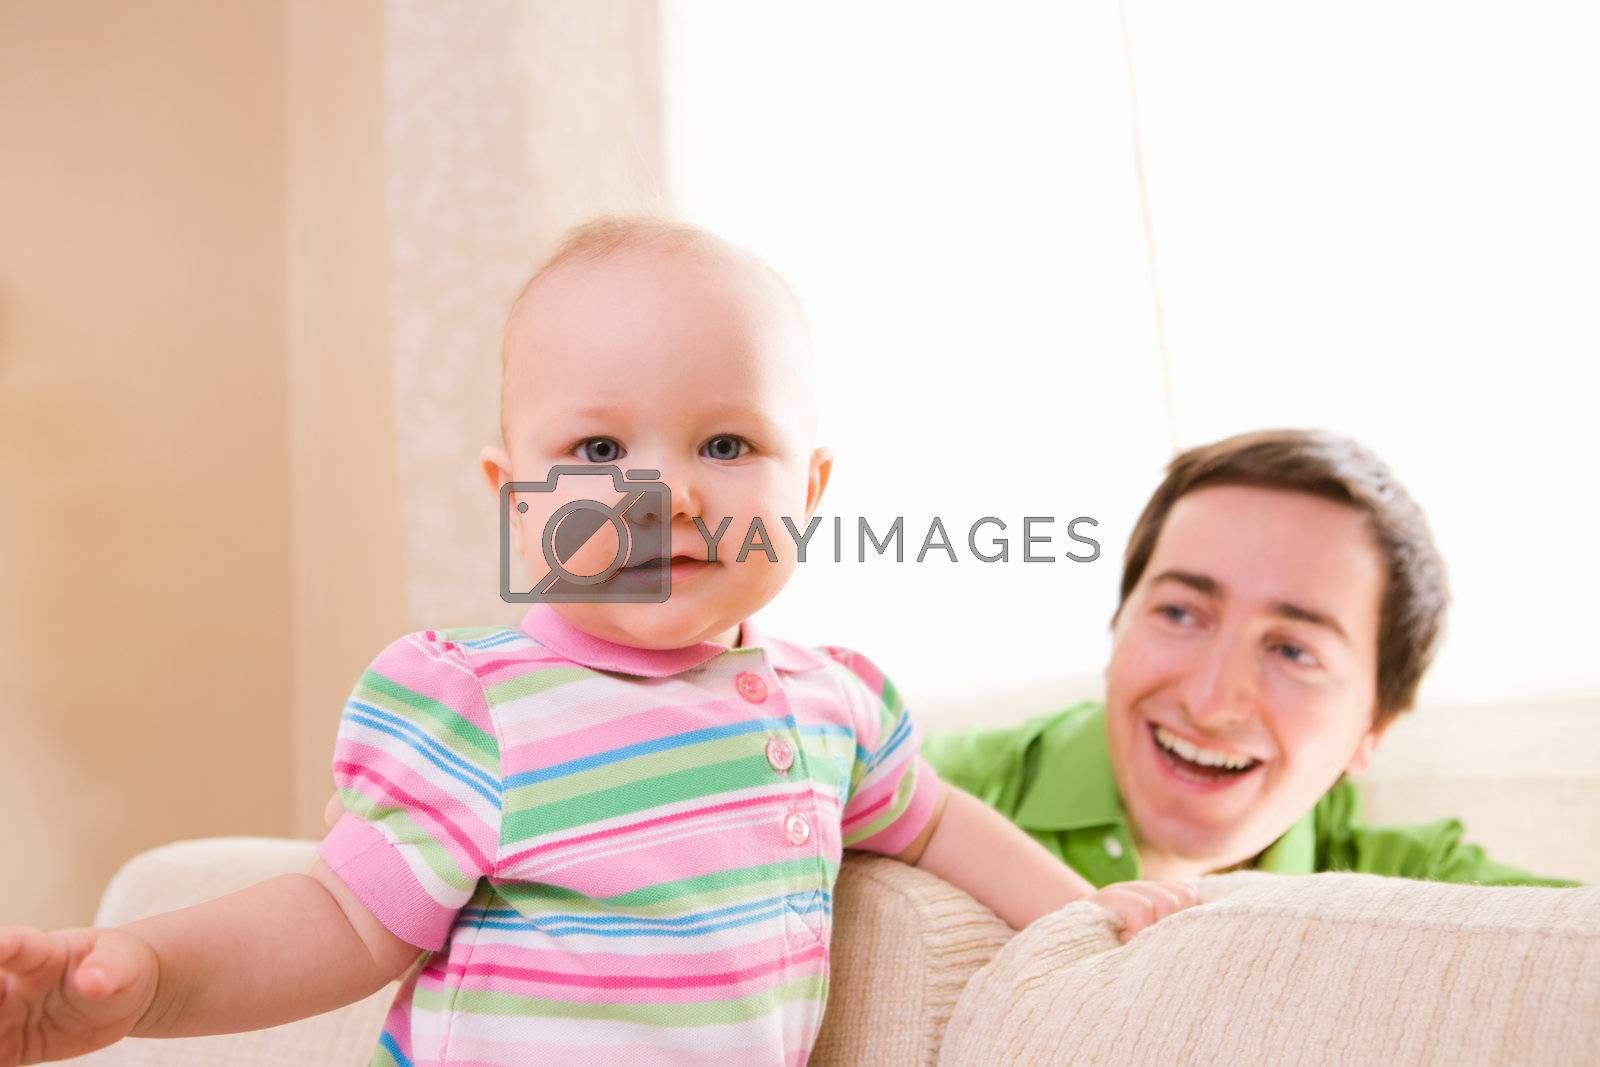 Lifestyle photo of father and baby daughter at home.